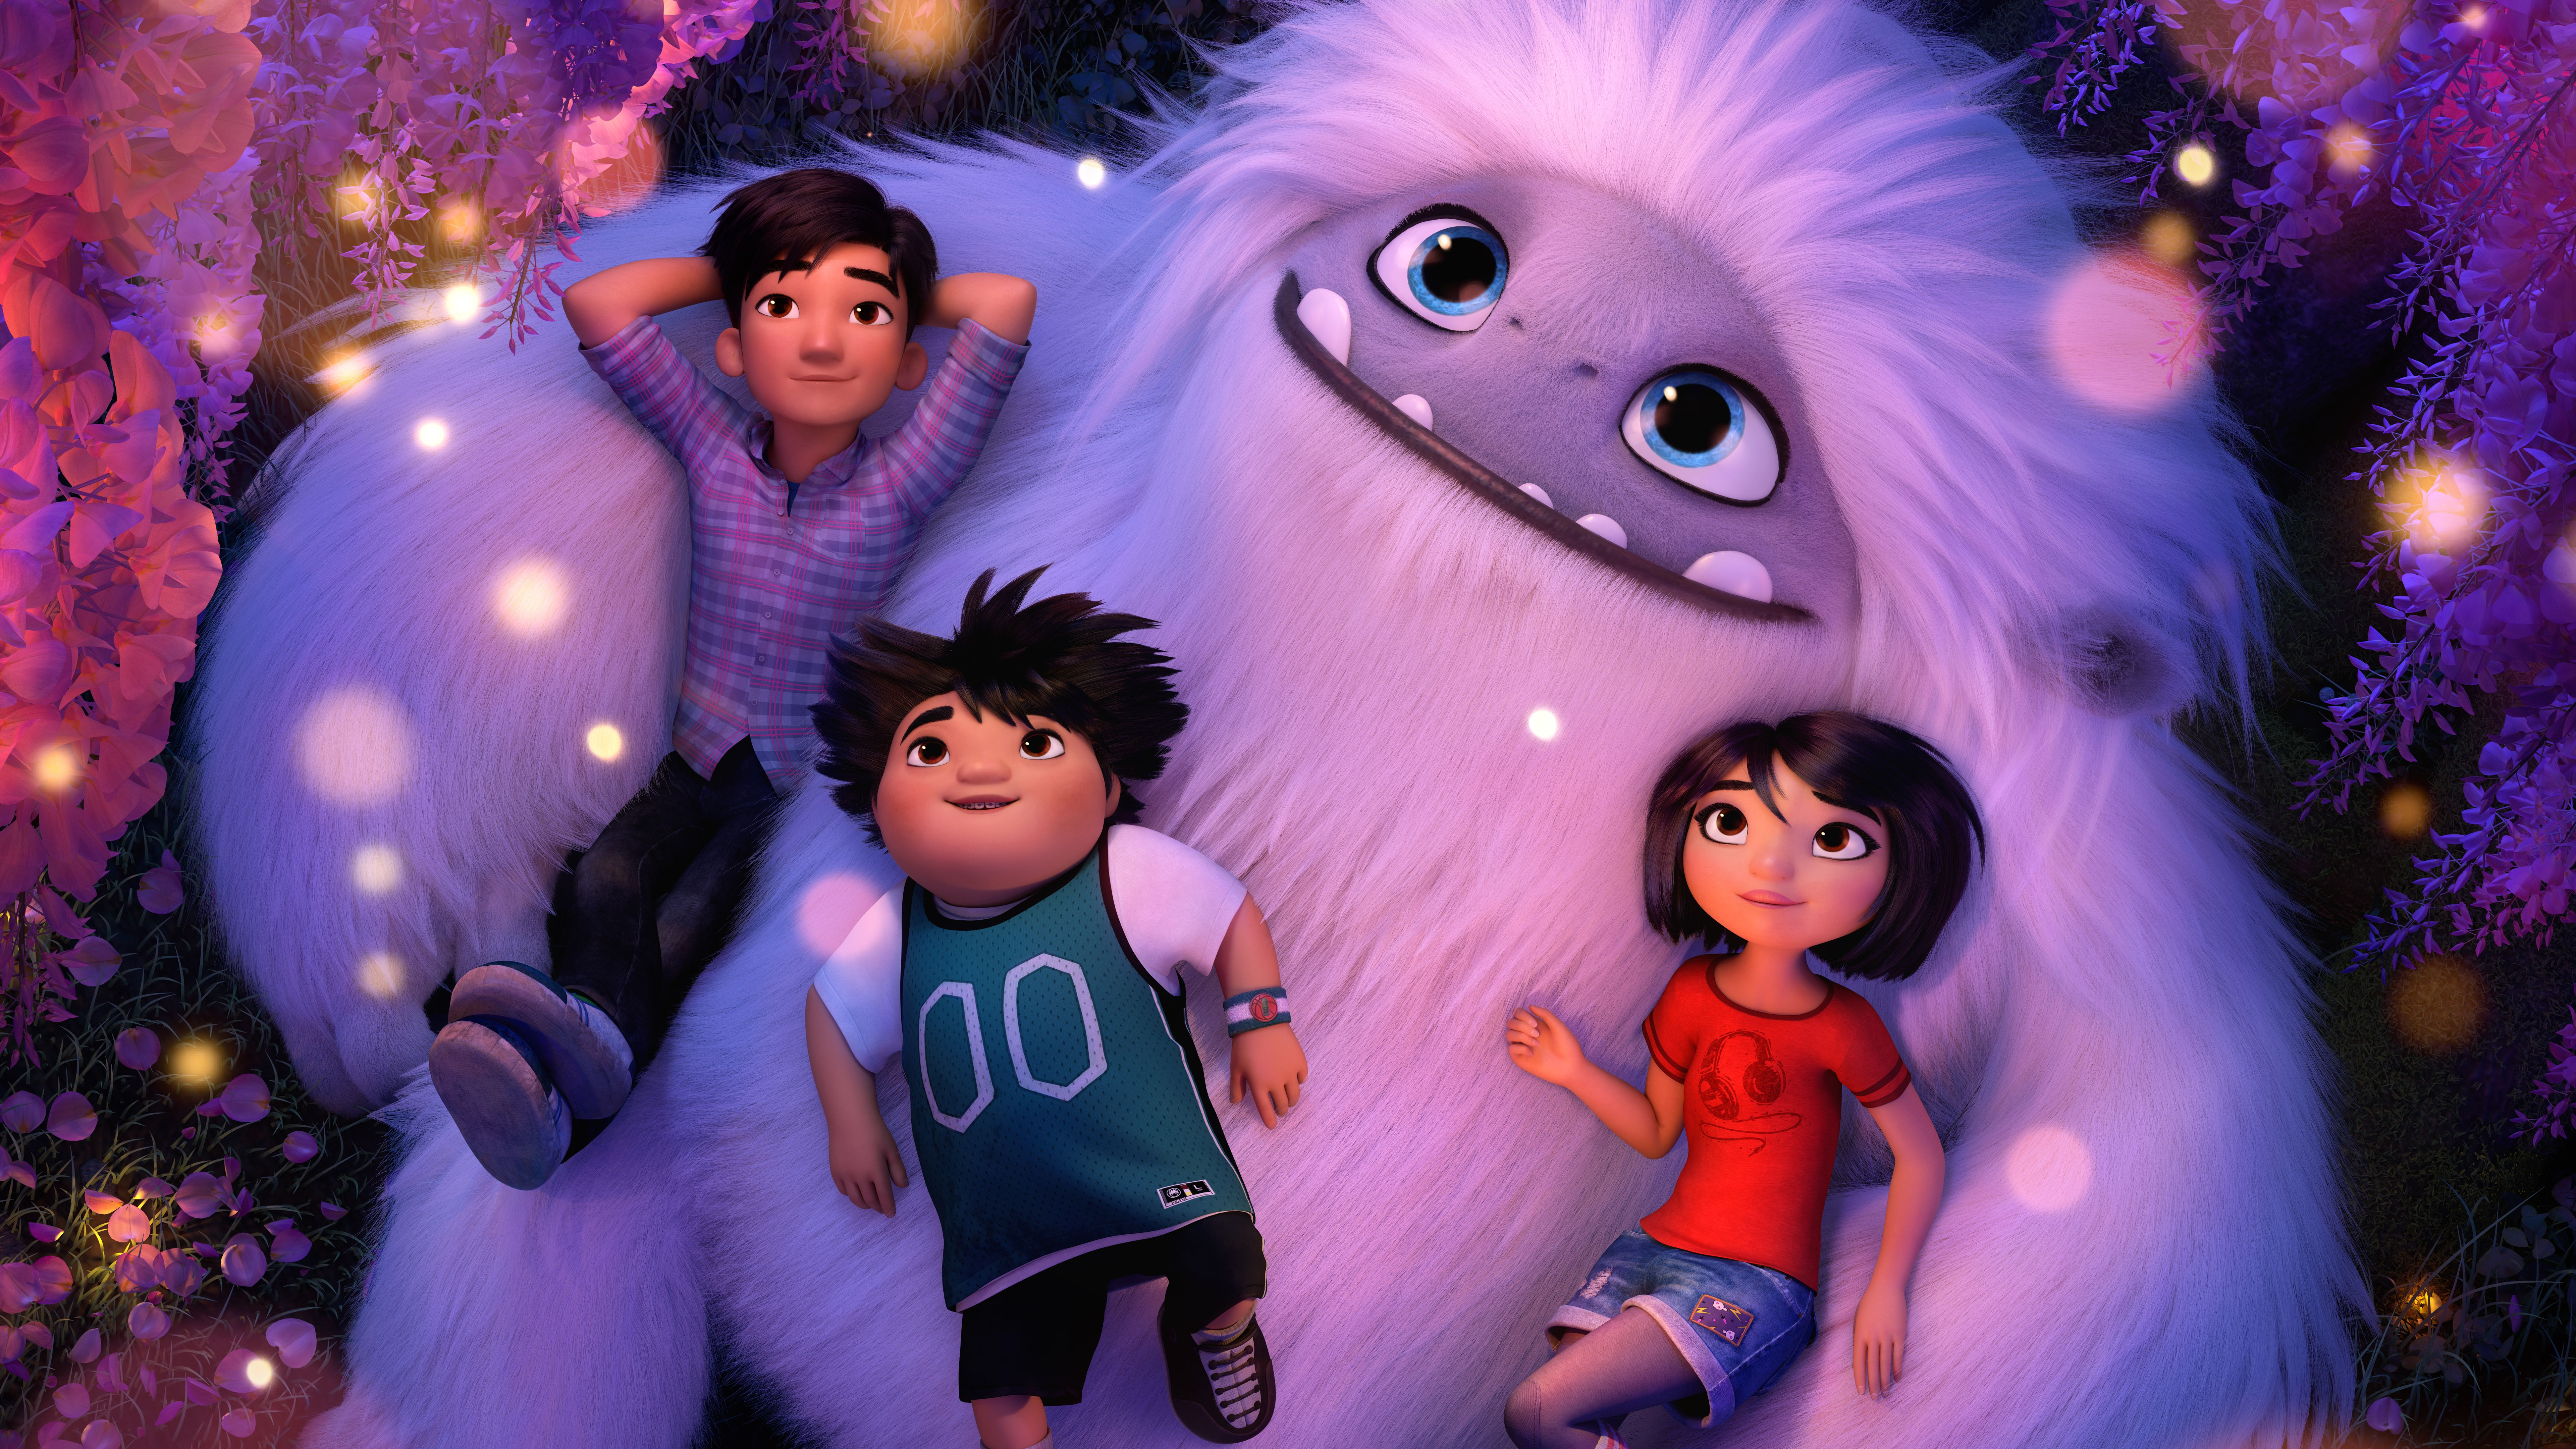 7680x4320 Abominable Animated Movie 8k, HD Movies, 4k Wallpapers ...